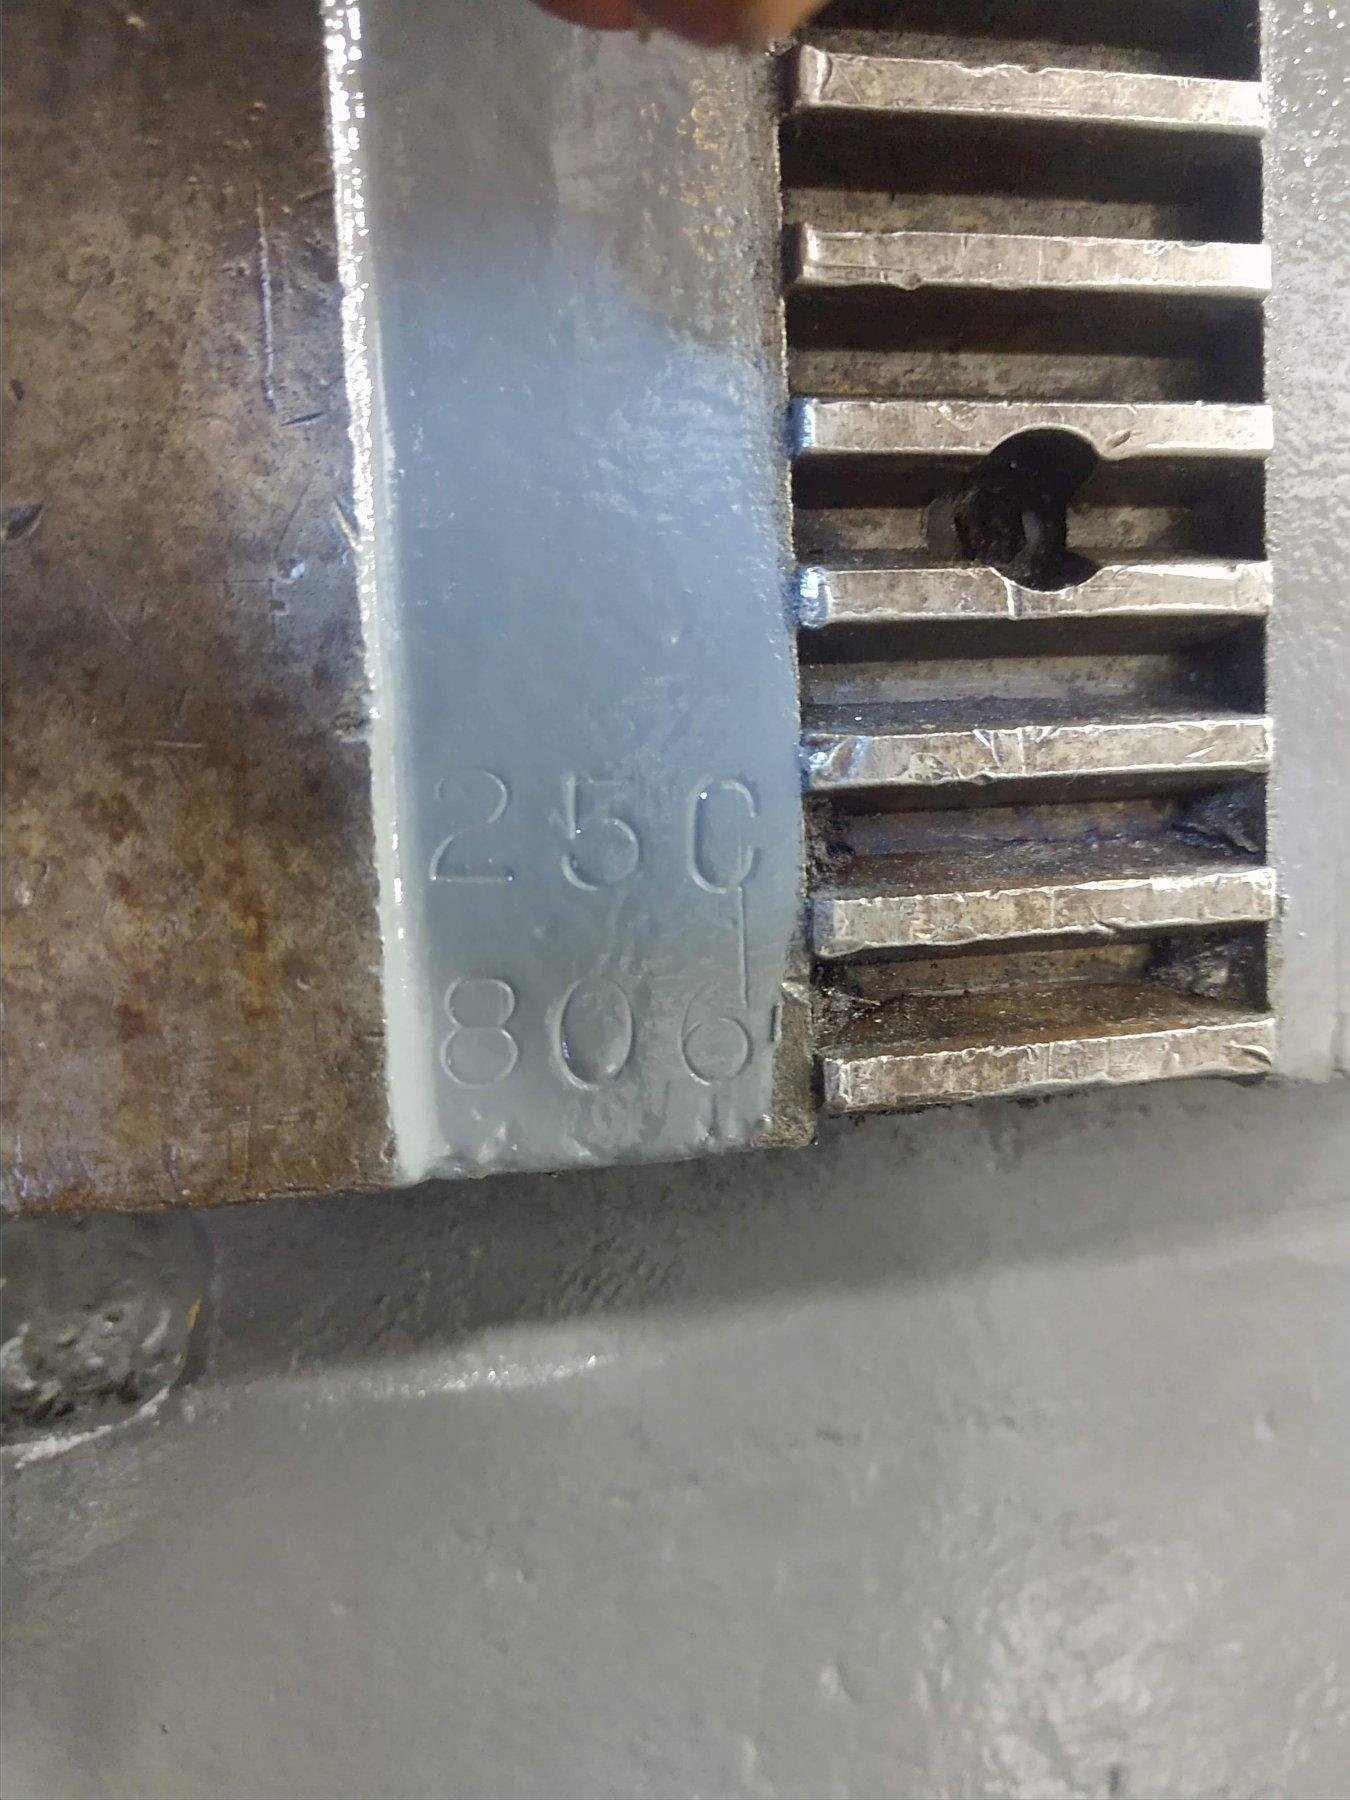 """24"""" CLEEREMAN MODEL 25A-A4906 SINGLE SPINDLE VERTICAL DRILL: STOCK #11436"""